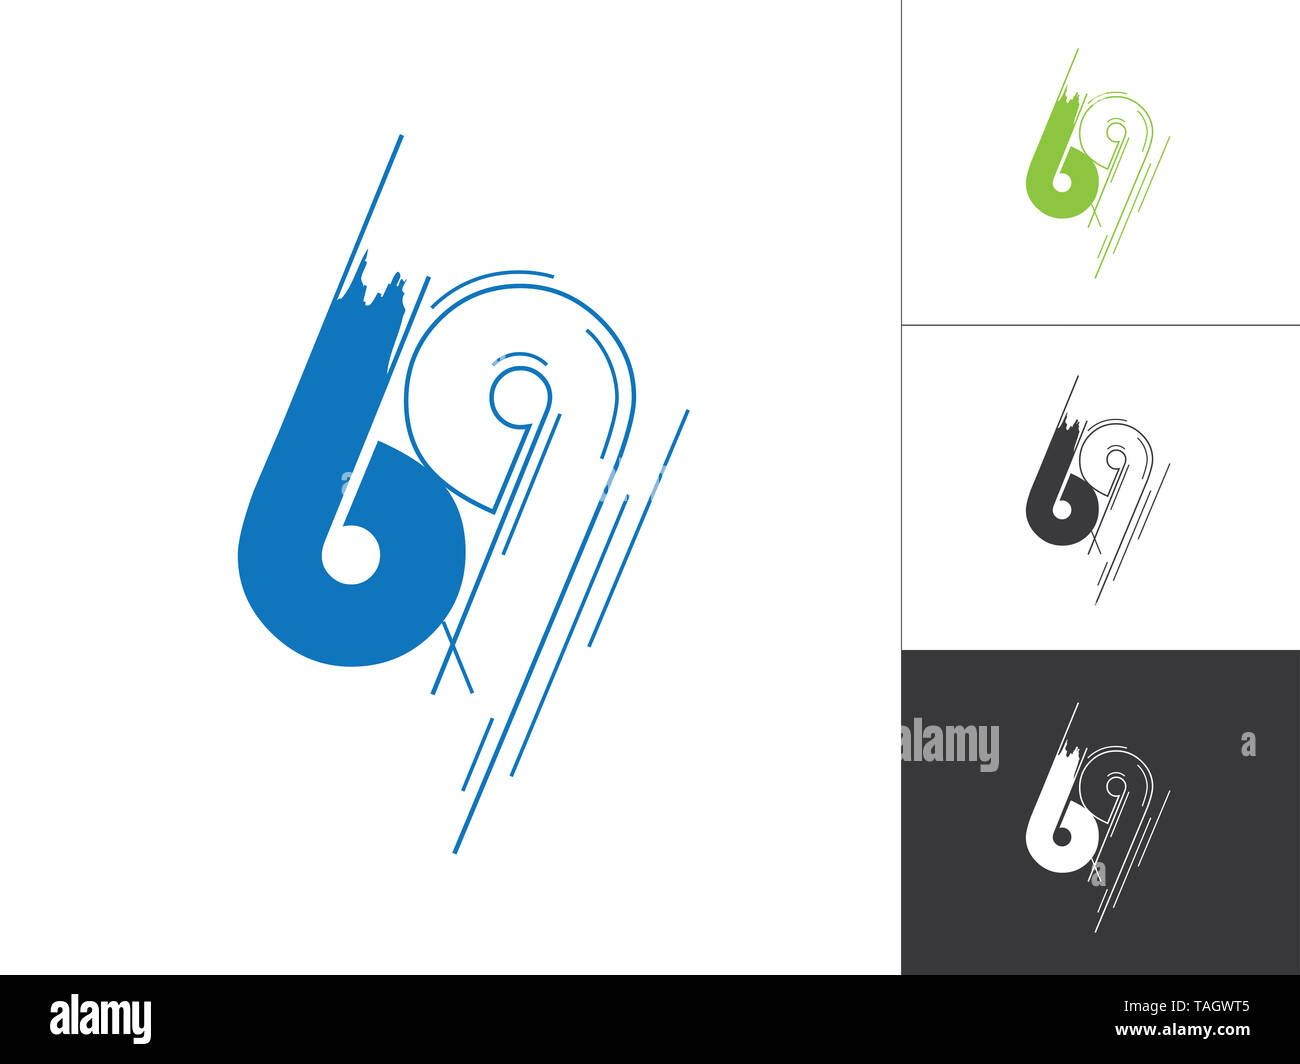 Initial Number 69 Logotype Line Sketch Concept in Vector. Modern Style Number Logo Designs Elements in Blue and Green Color. Number 69 Inside This Des - Stock Image